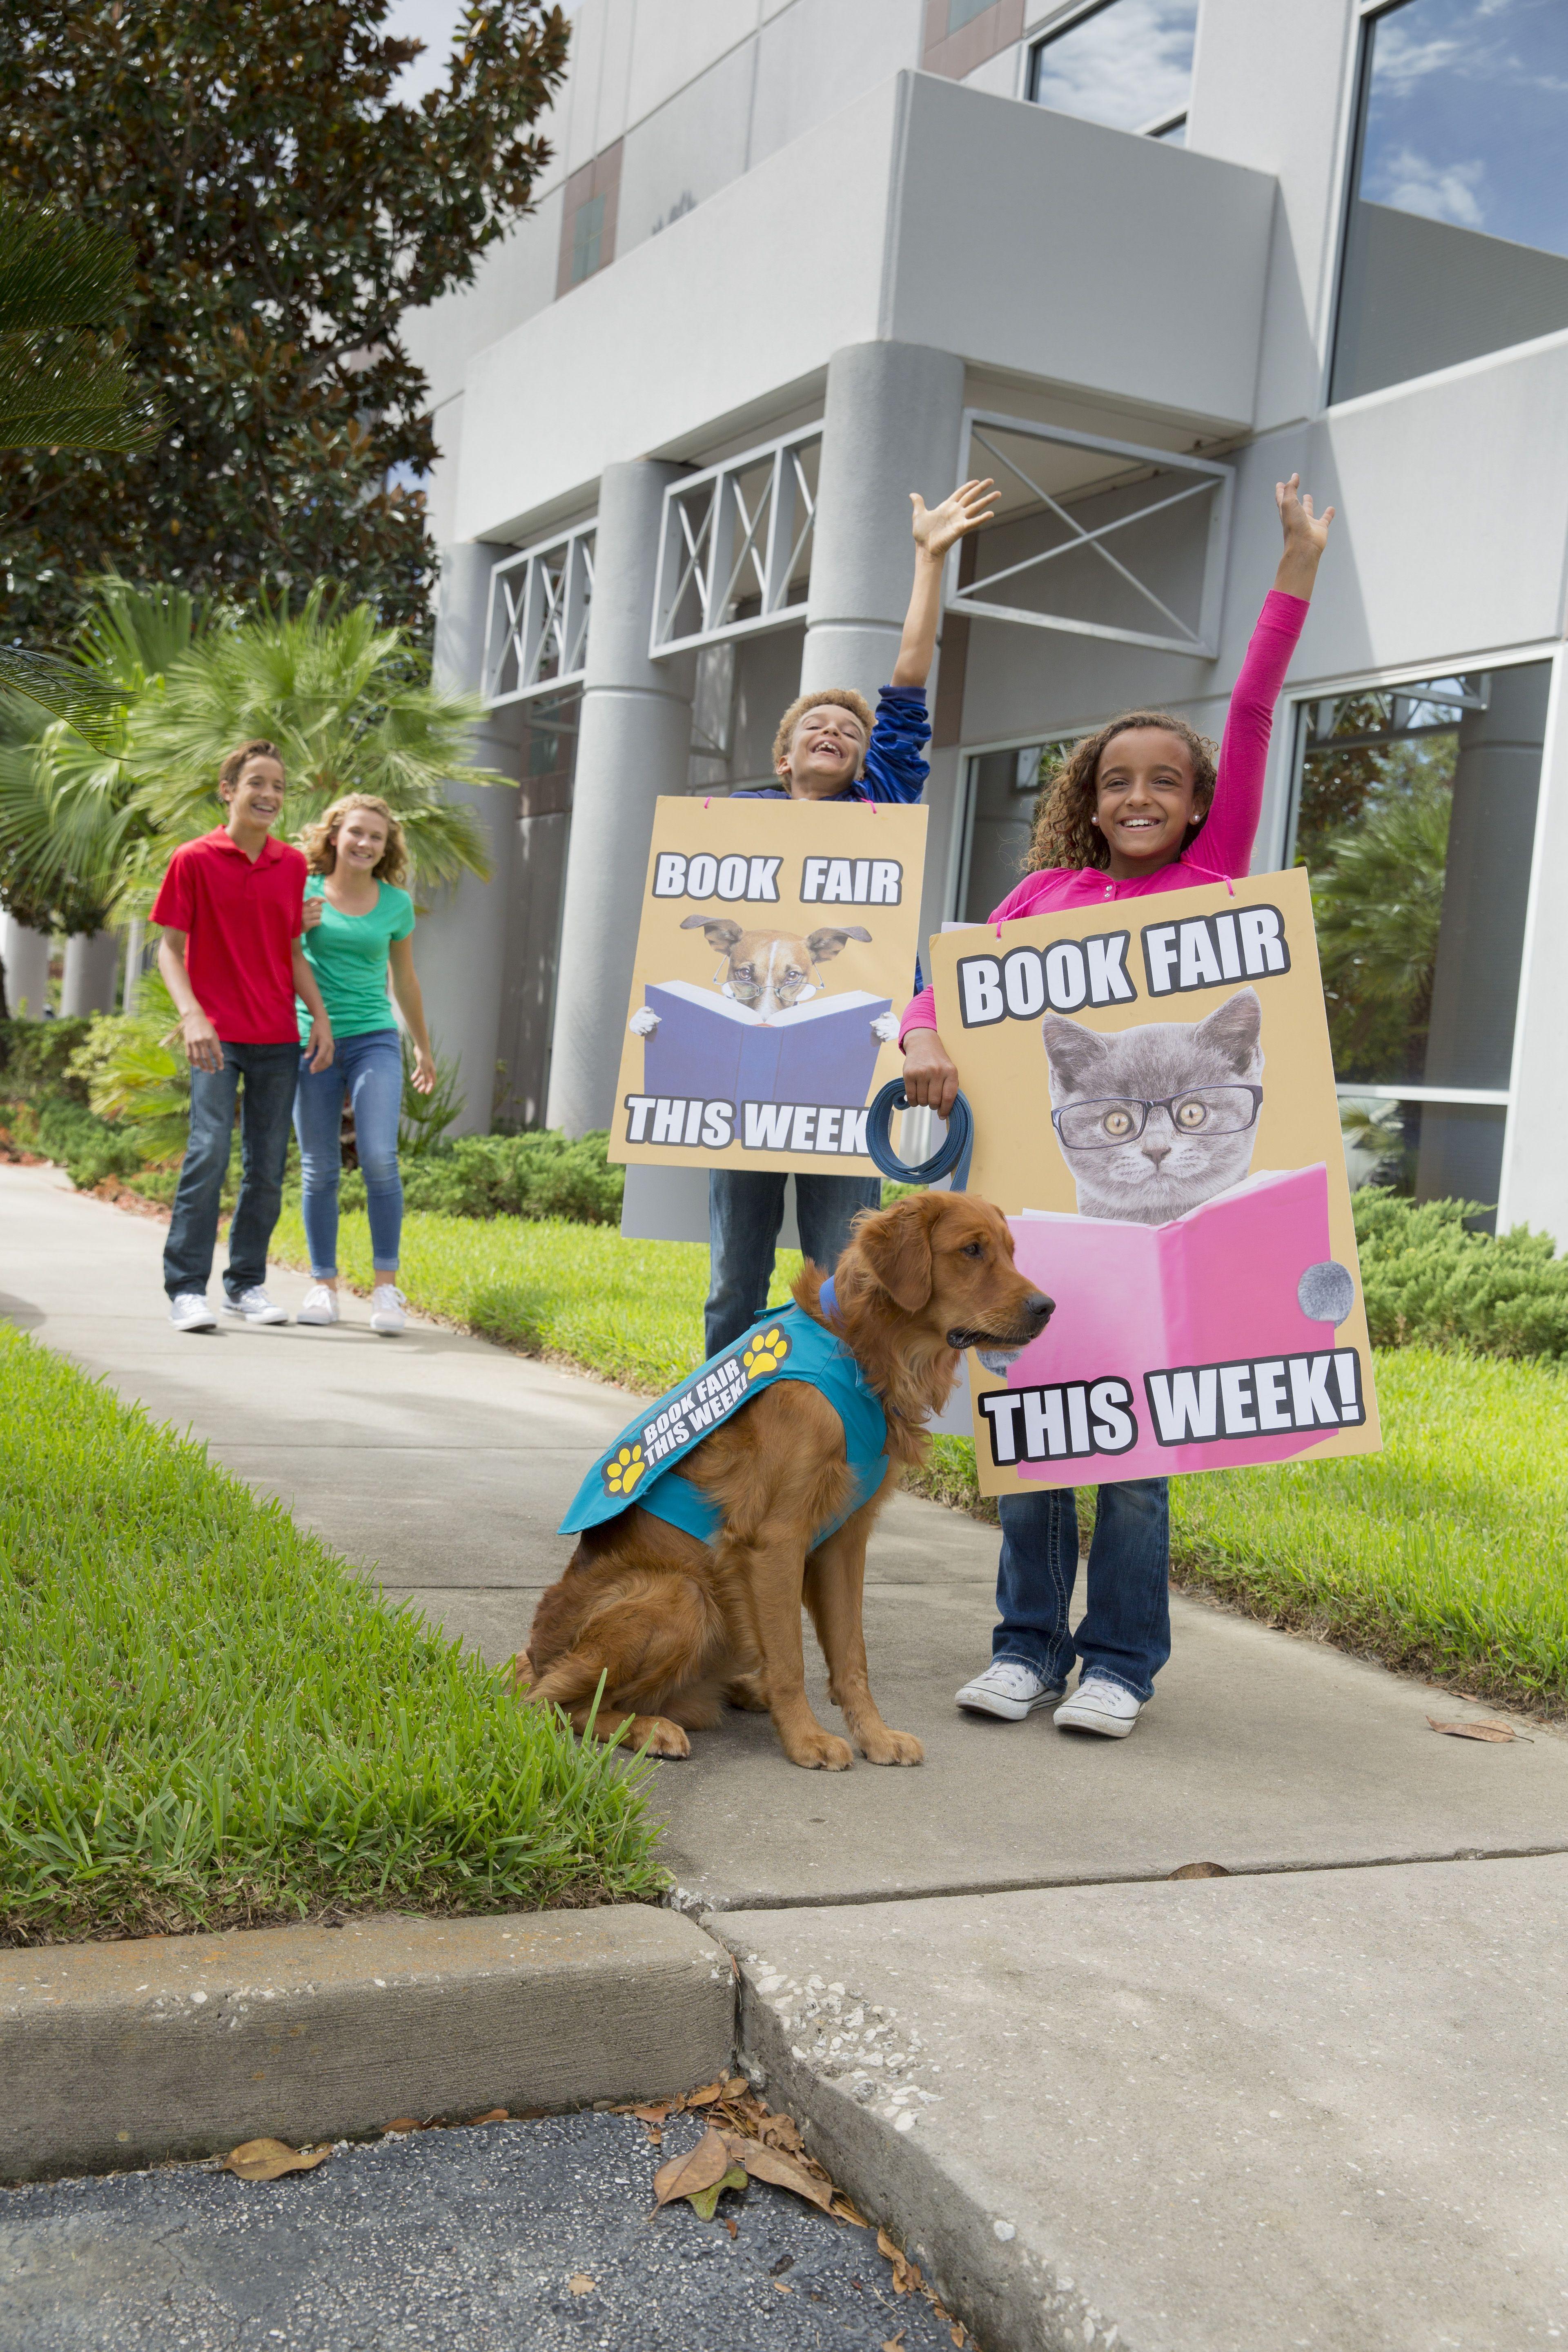 Outfit Student Volunteers With Sandwich Board Signs And A Dog With